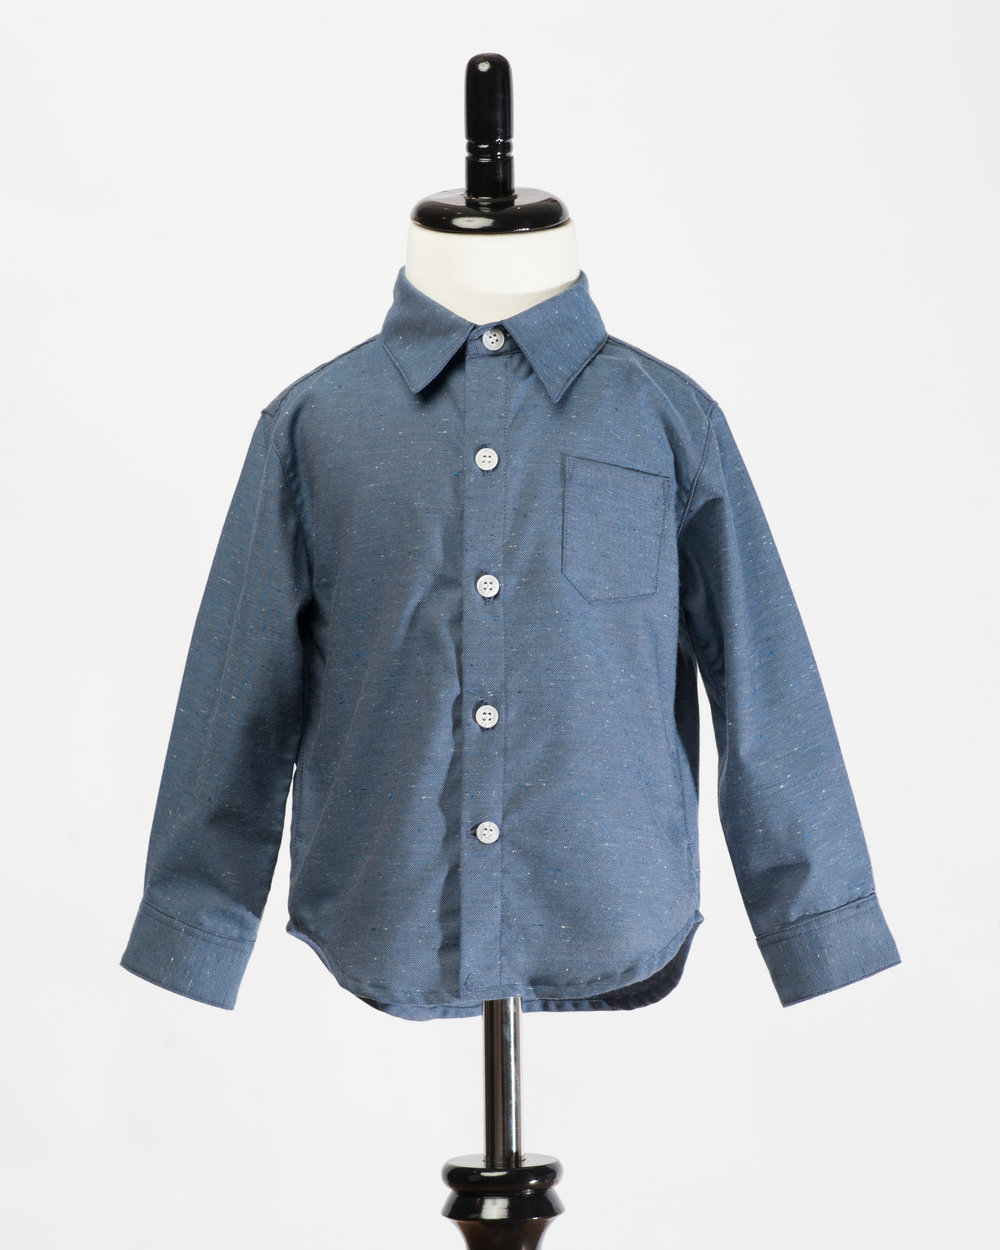 Kids Long Sleeves Navy Fleck Shirt Front FW17.jpg